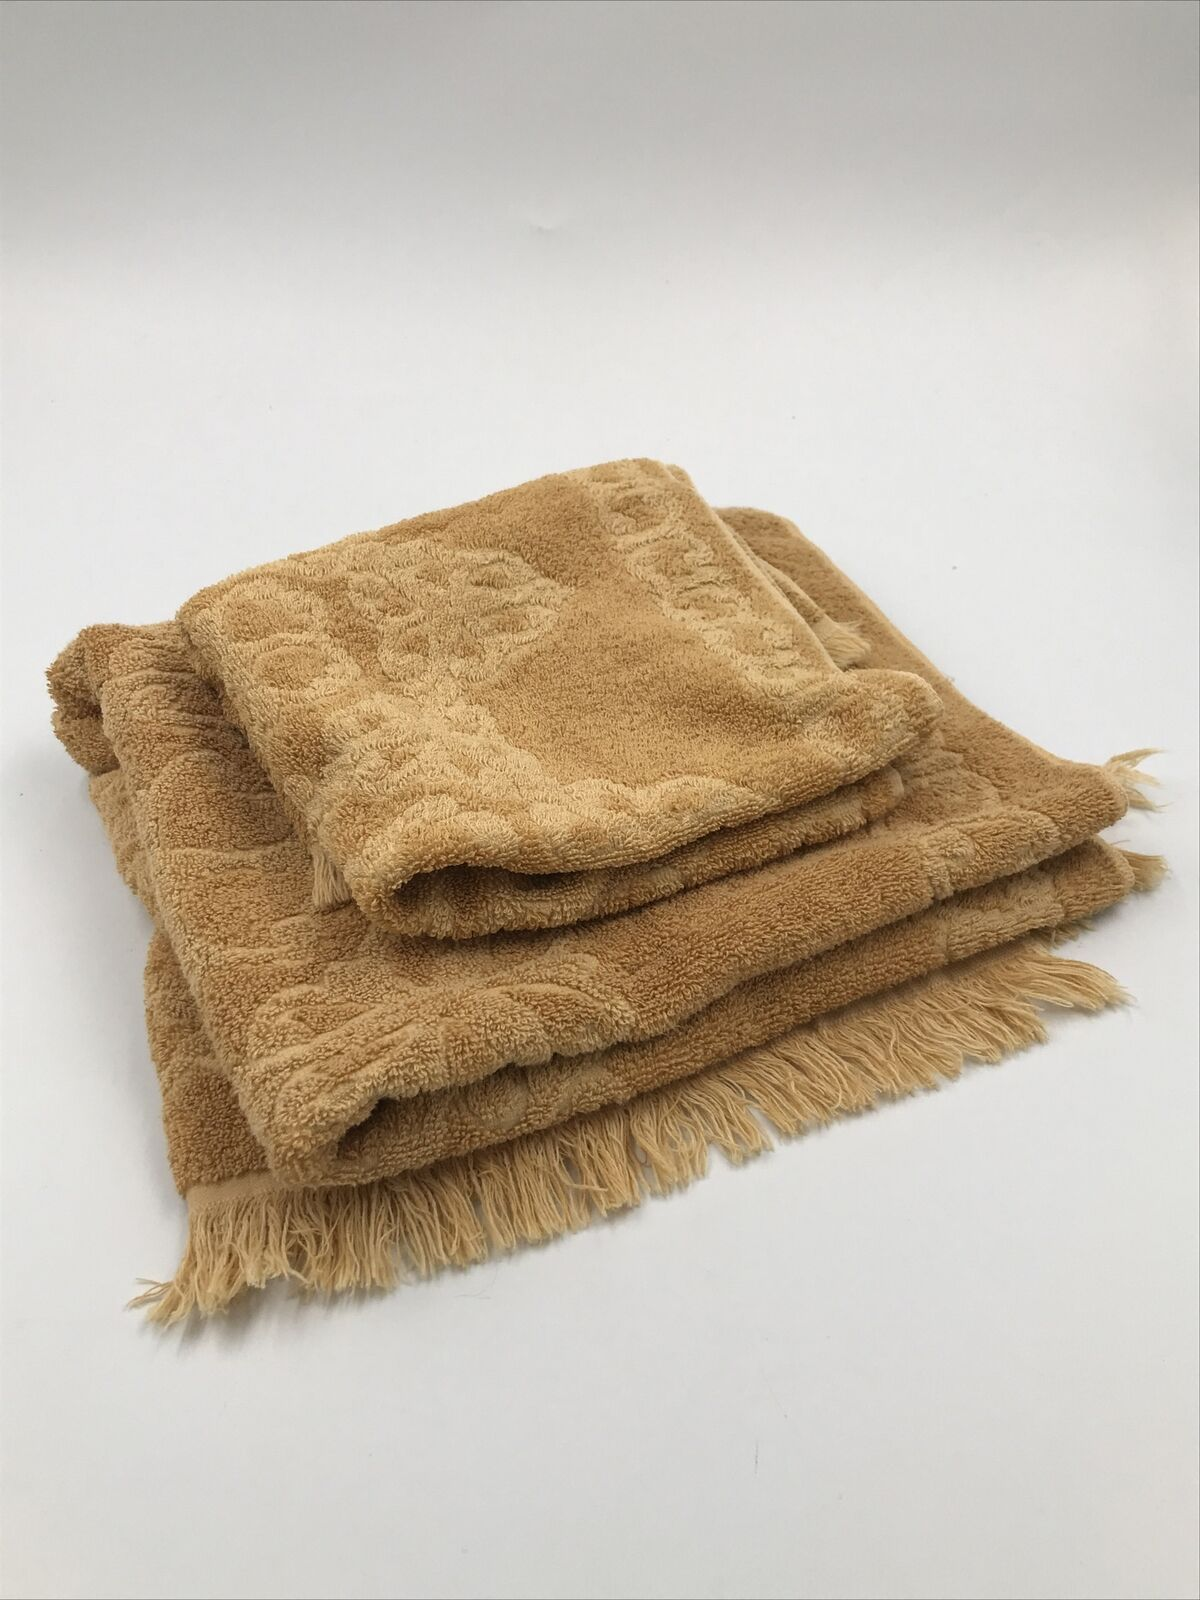 Gold Label Cannon All Cotton Made In USA Tan Hand & Bath Towels